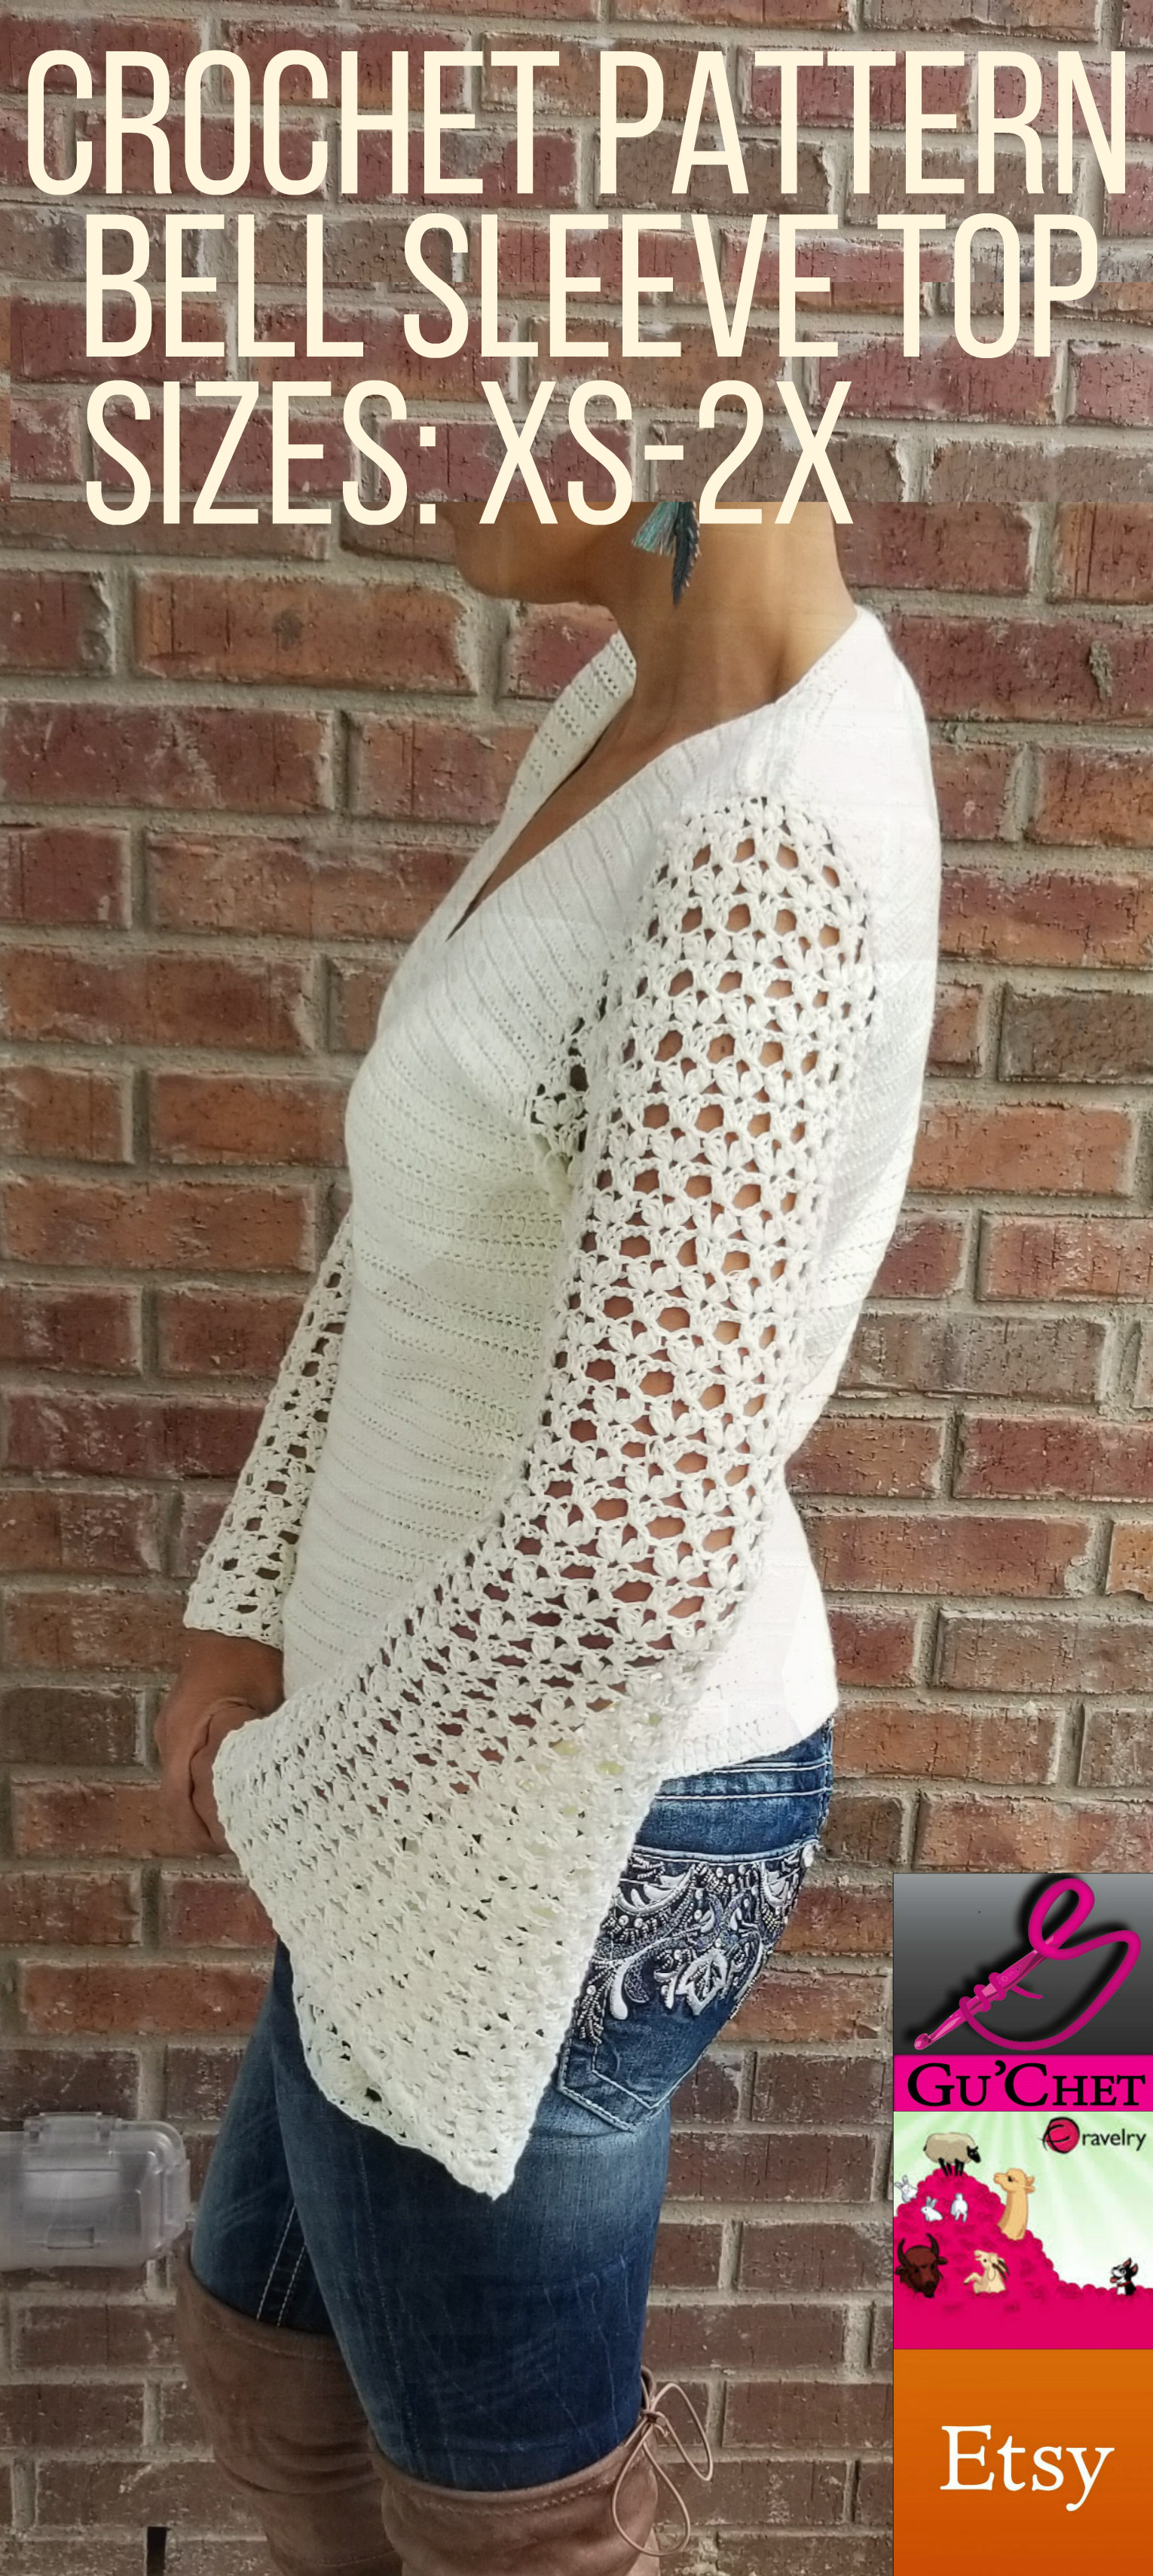 12_Crochet Top Pattern by GuChet_Bell Sleeve Top_5.jpg